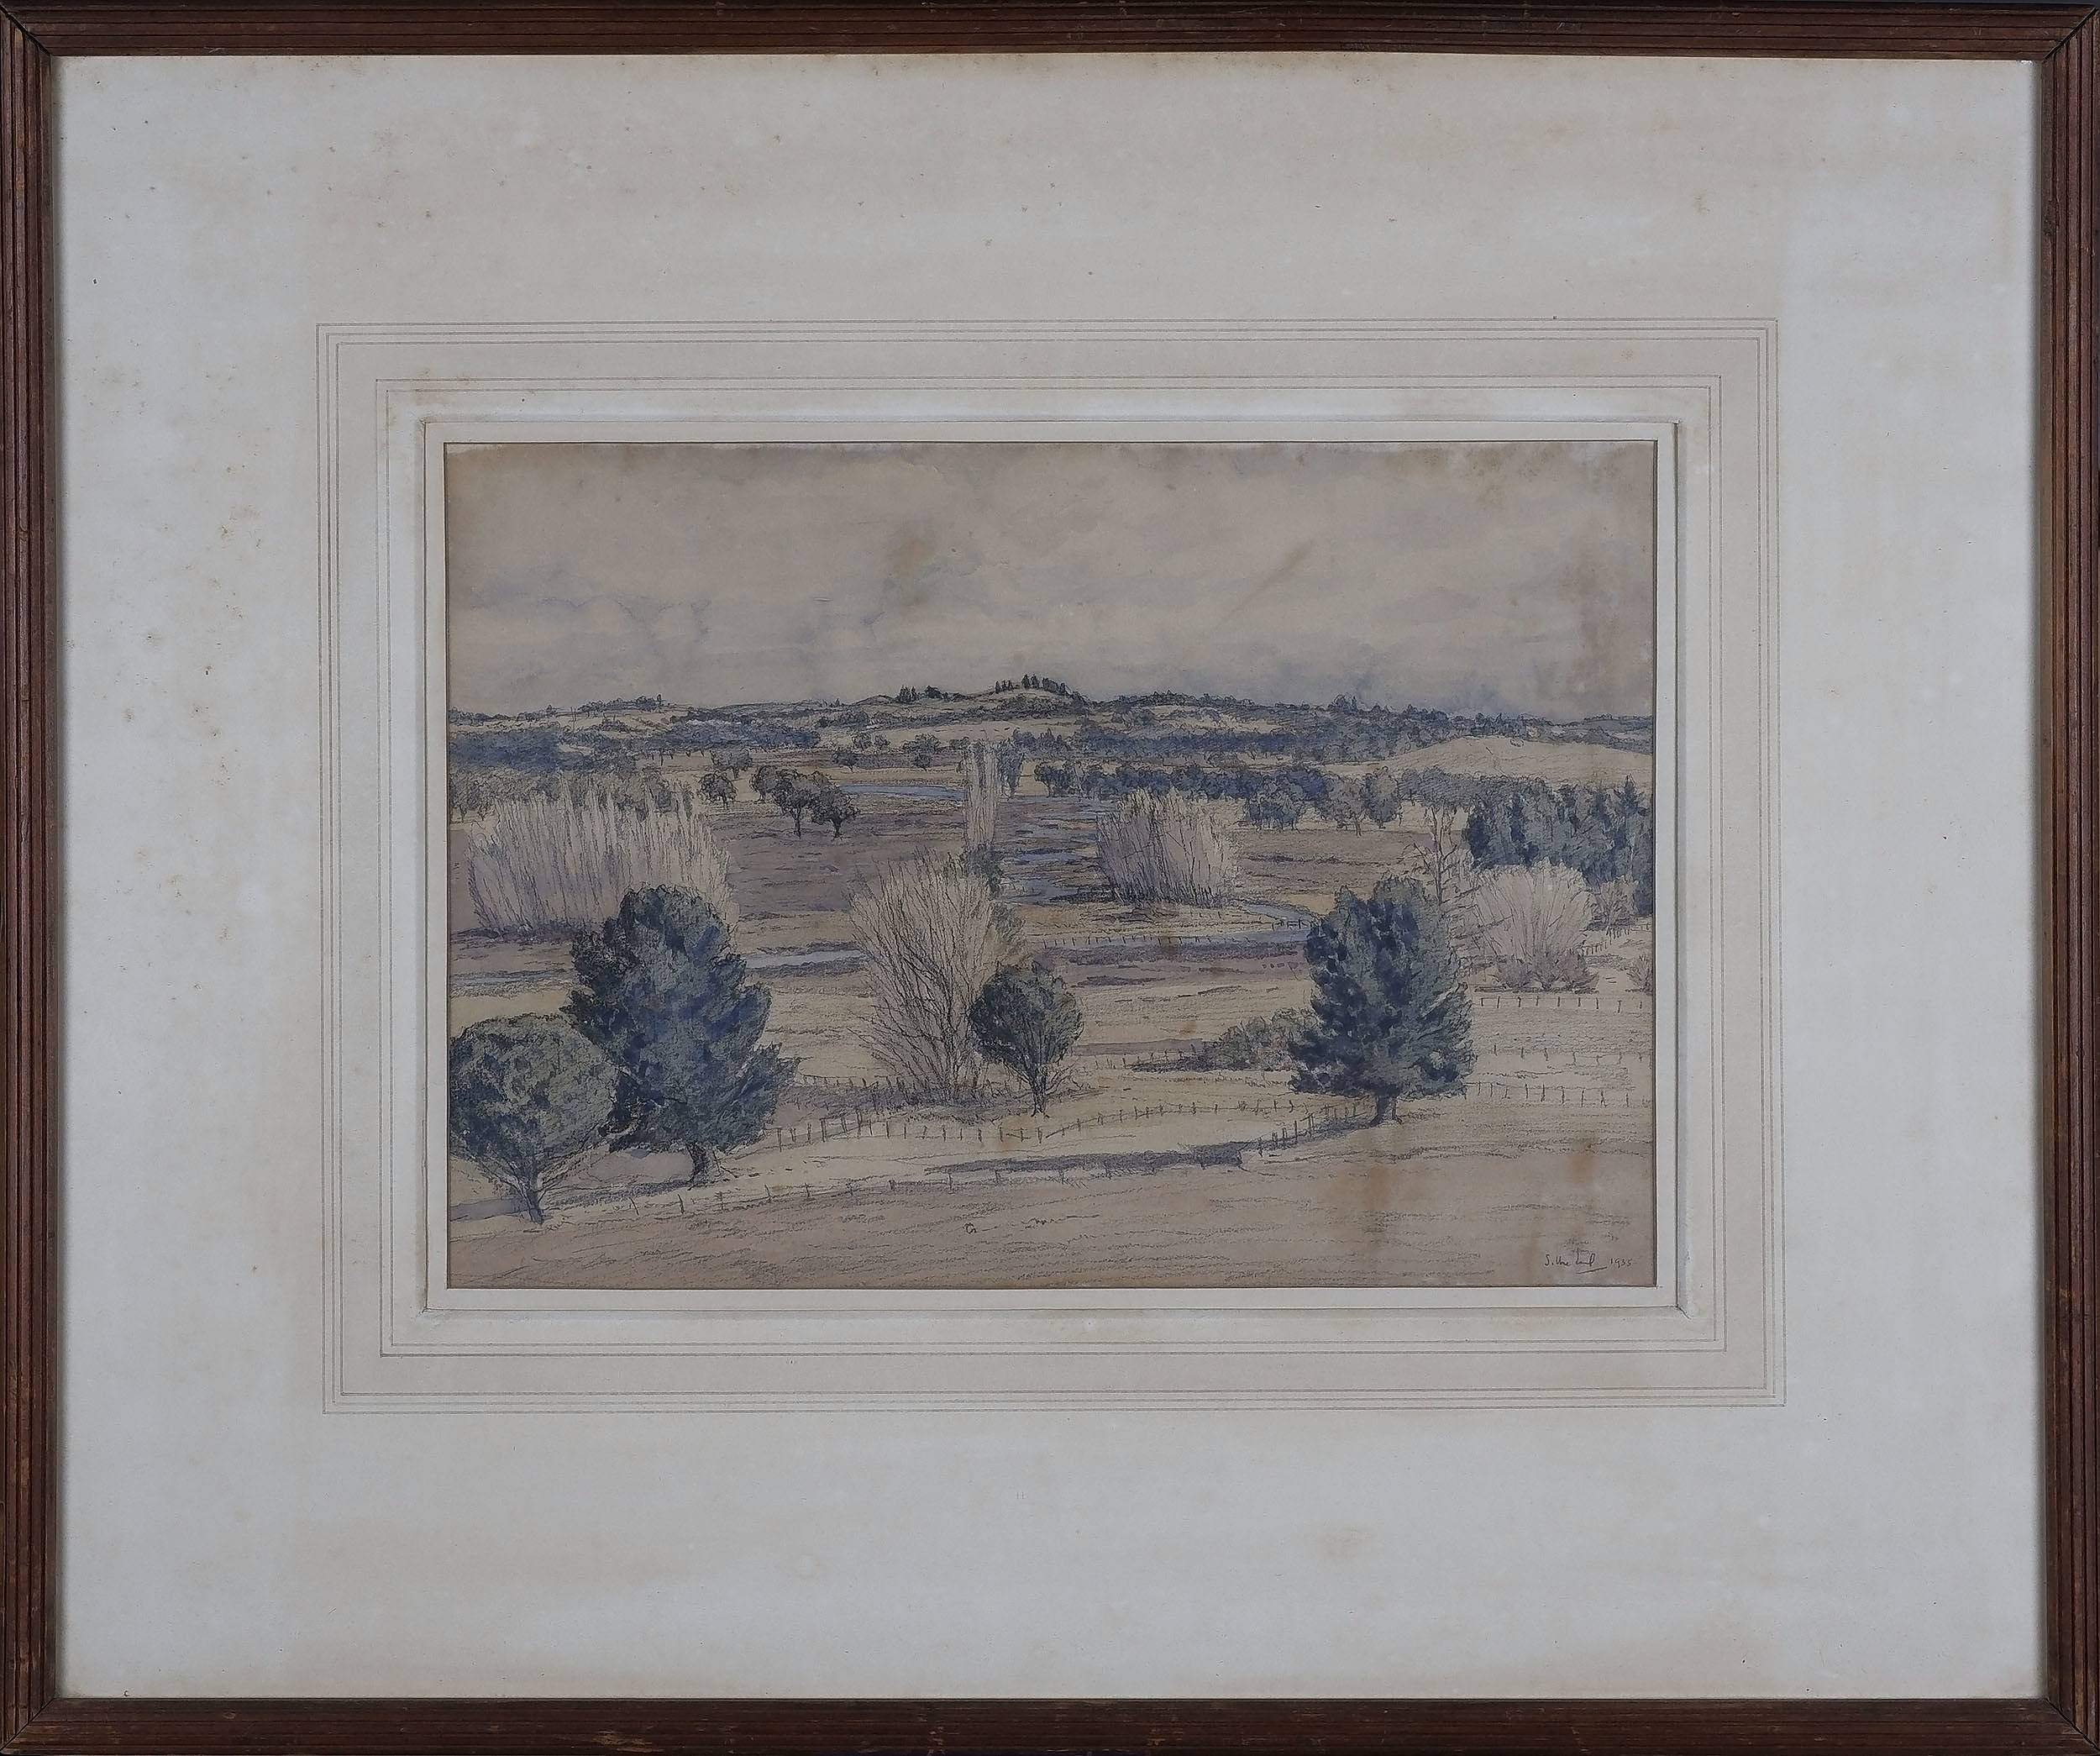 'Sydney George Ure Smith (Britain, Australia, 1887-1949) Landscape From Moidart Bowral 1935 Watercolour and Pencil'